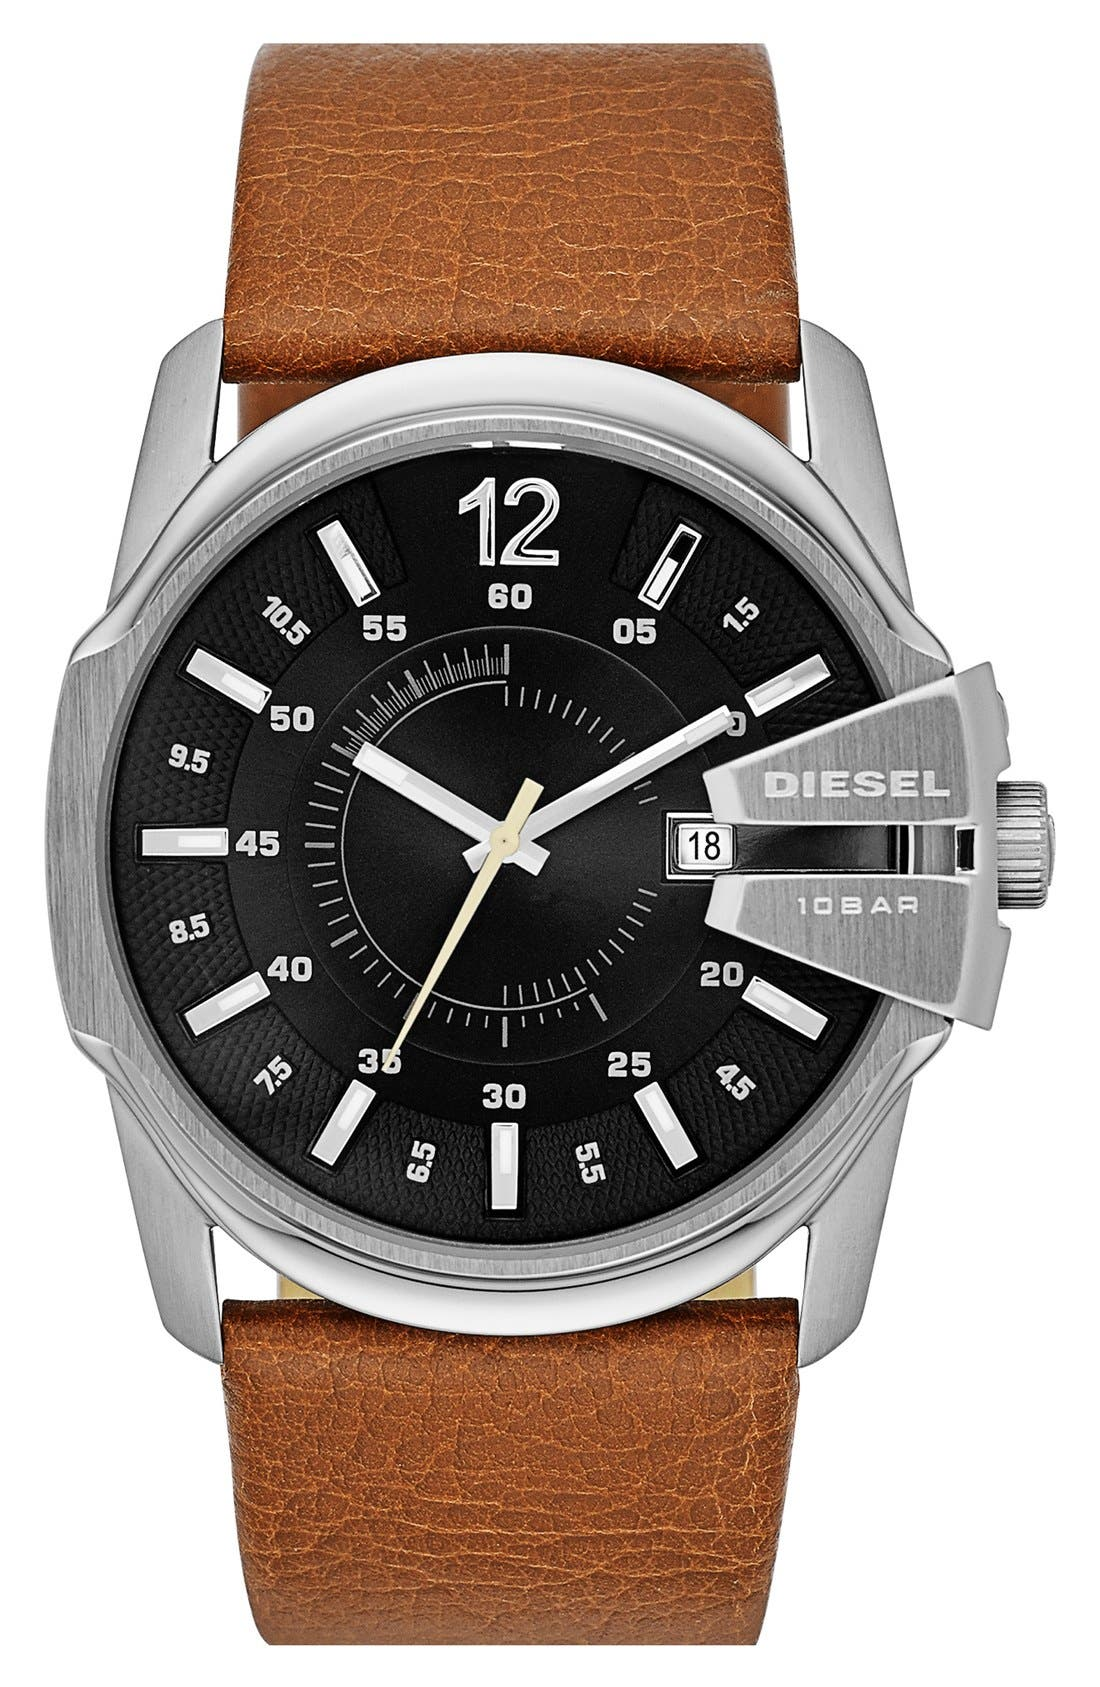 Main Image - DIESEL® 'Master Chief' Leather Strap Watch, 45mm x 51mm